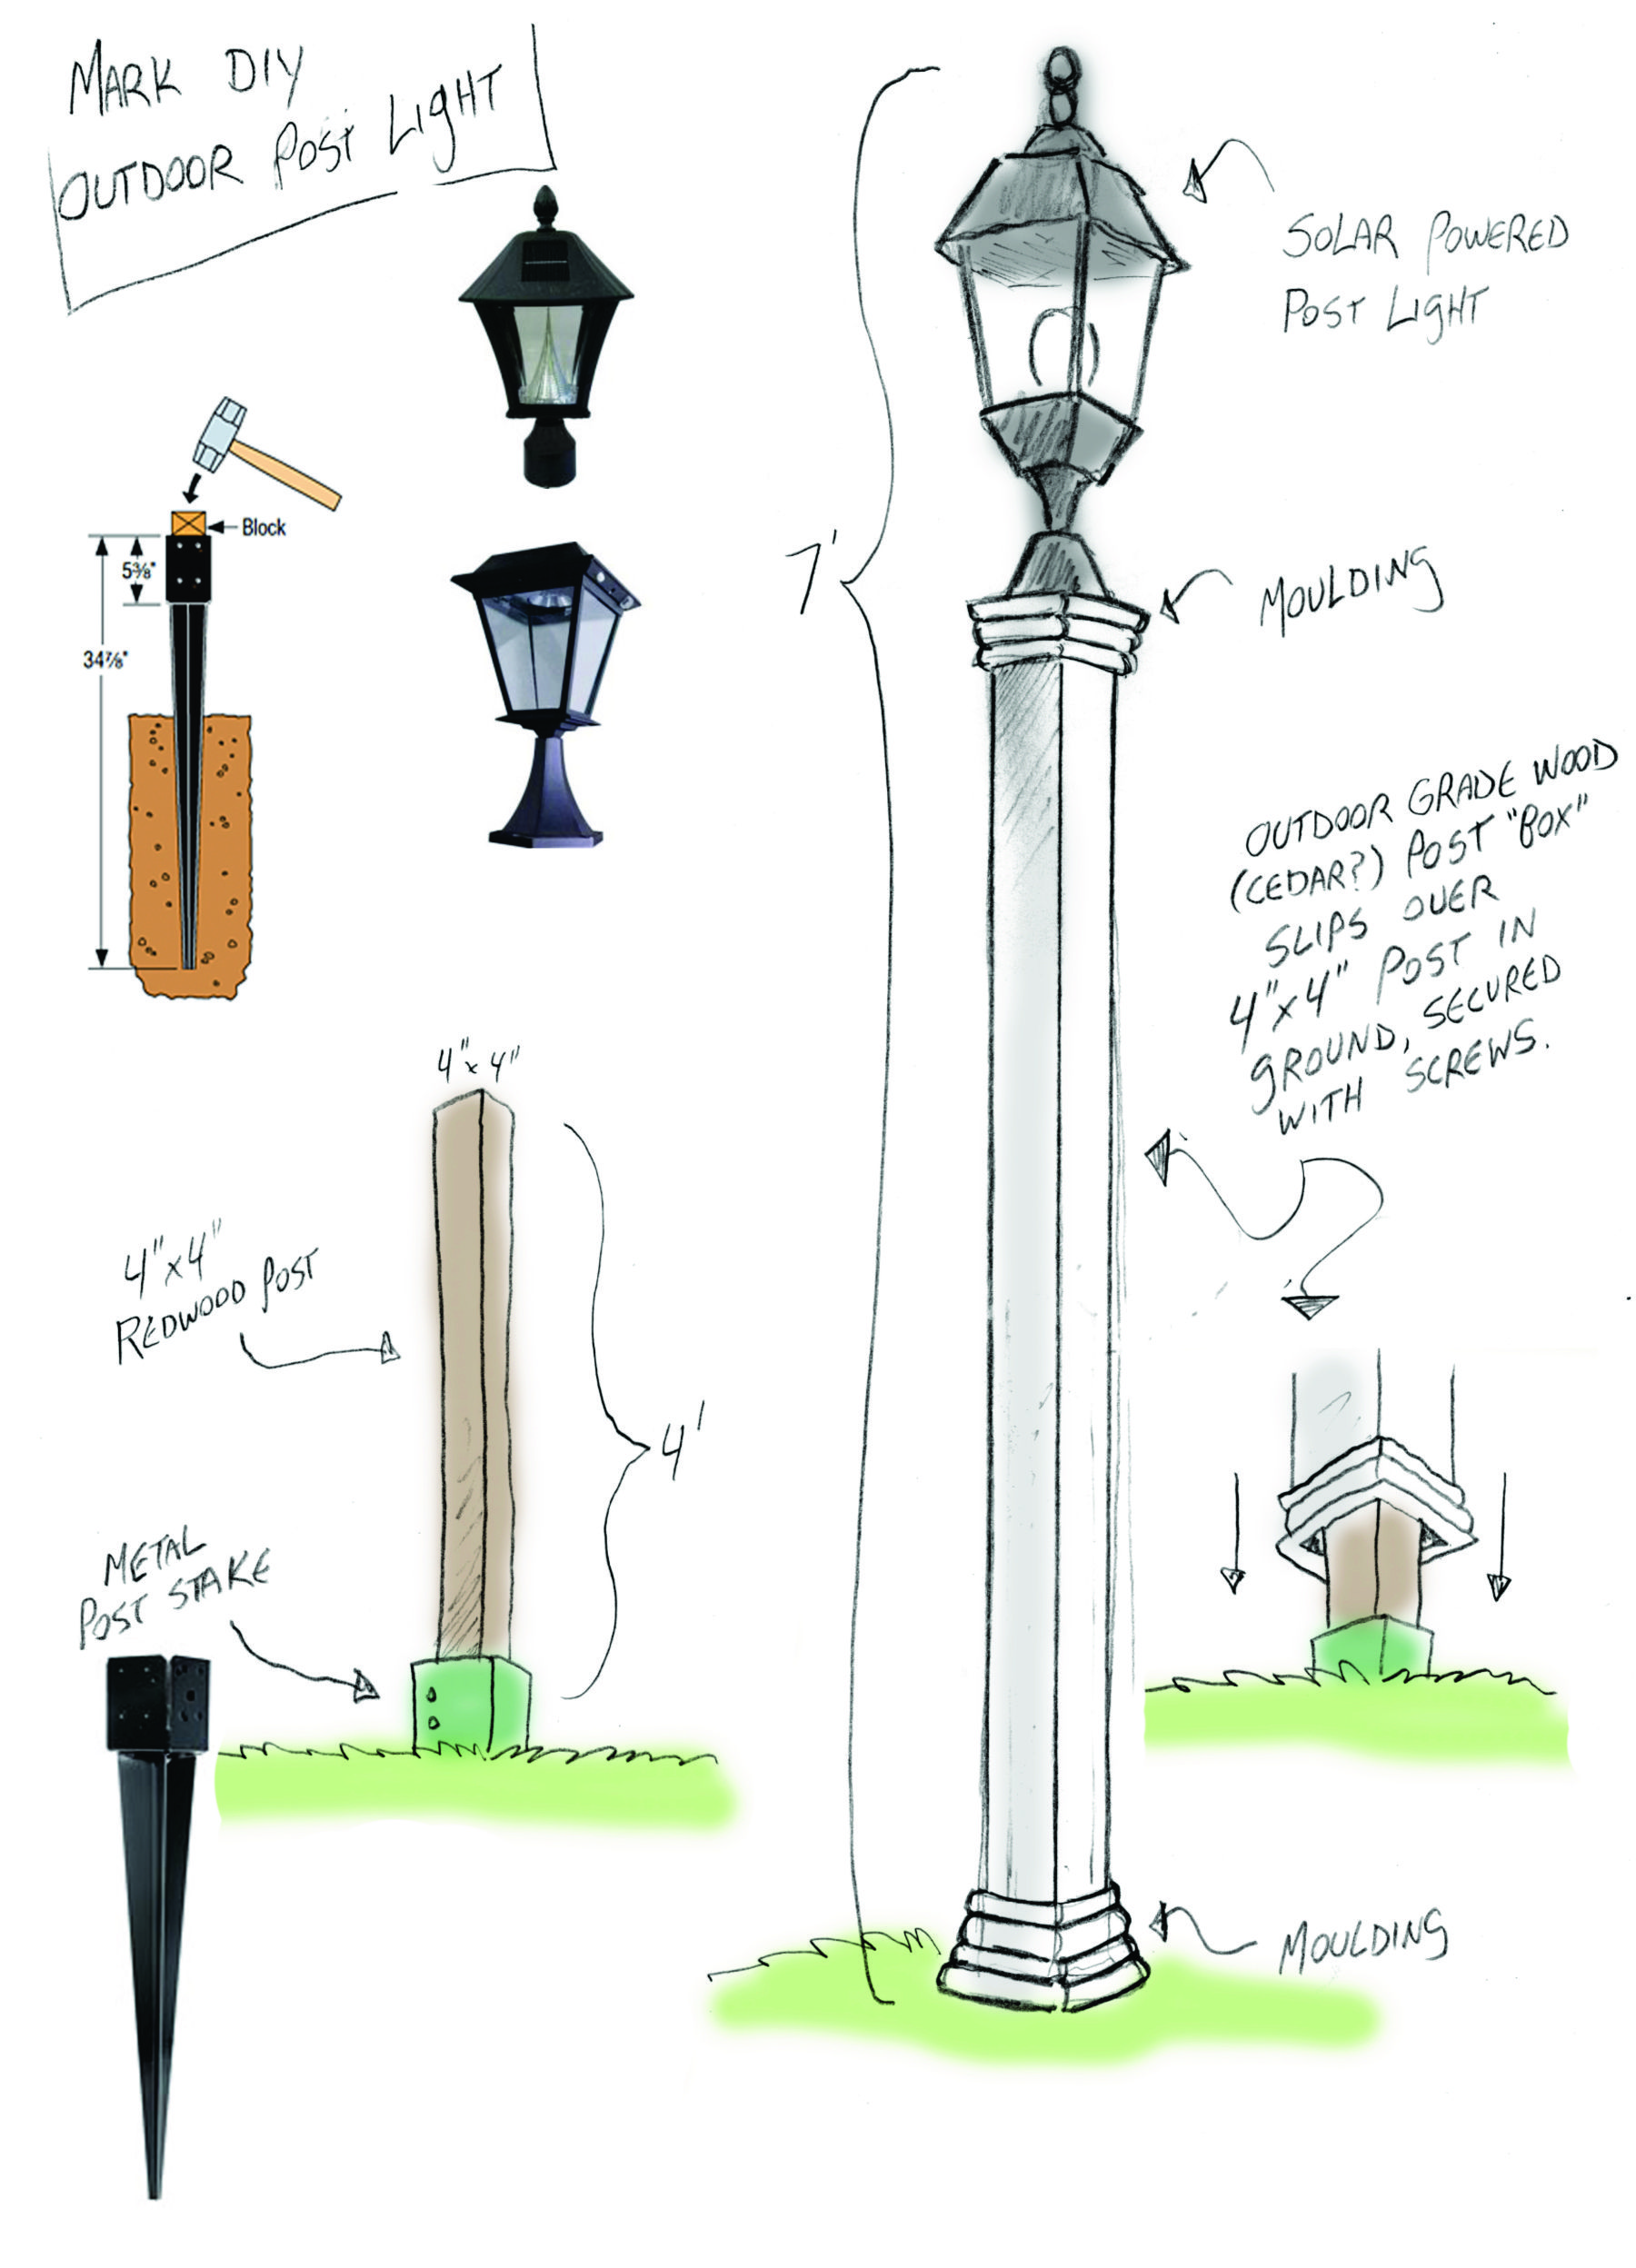 Solar Lamp Post Outdoor Solar Lamppost Diy Home Family Landscaping Solar